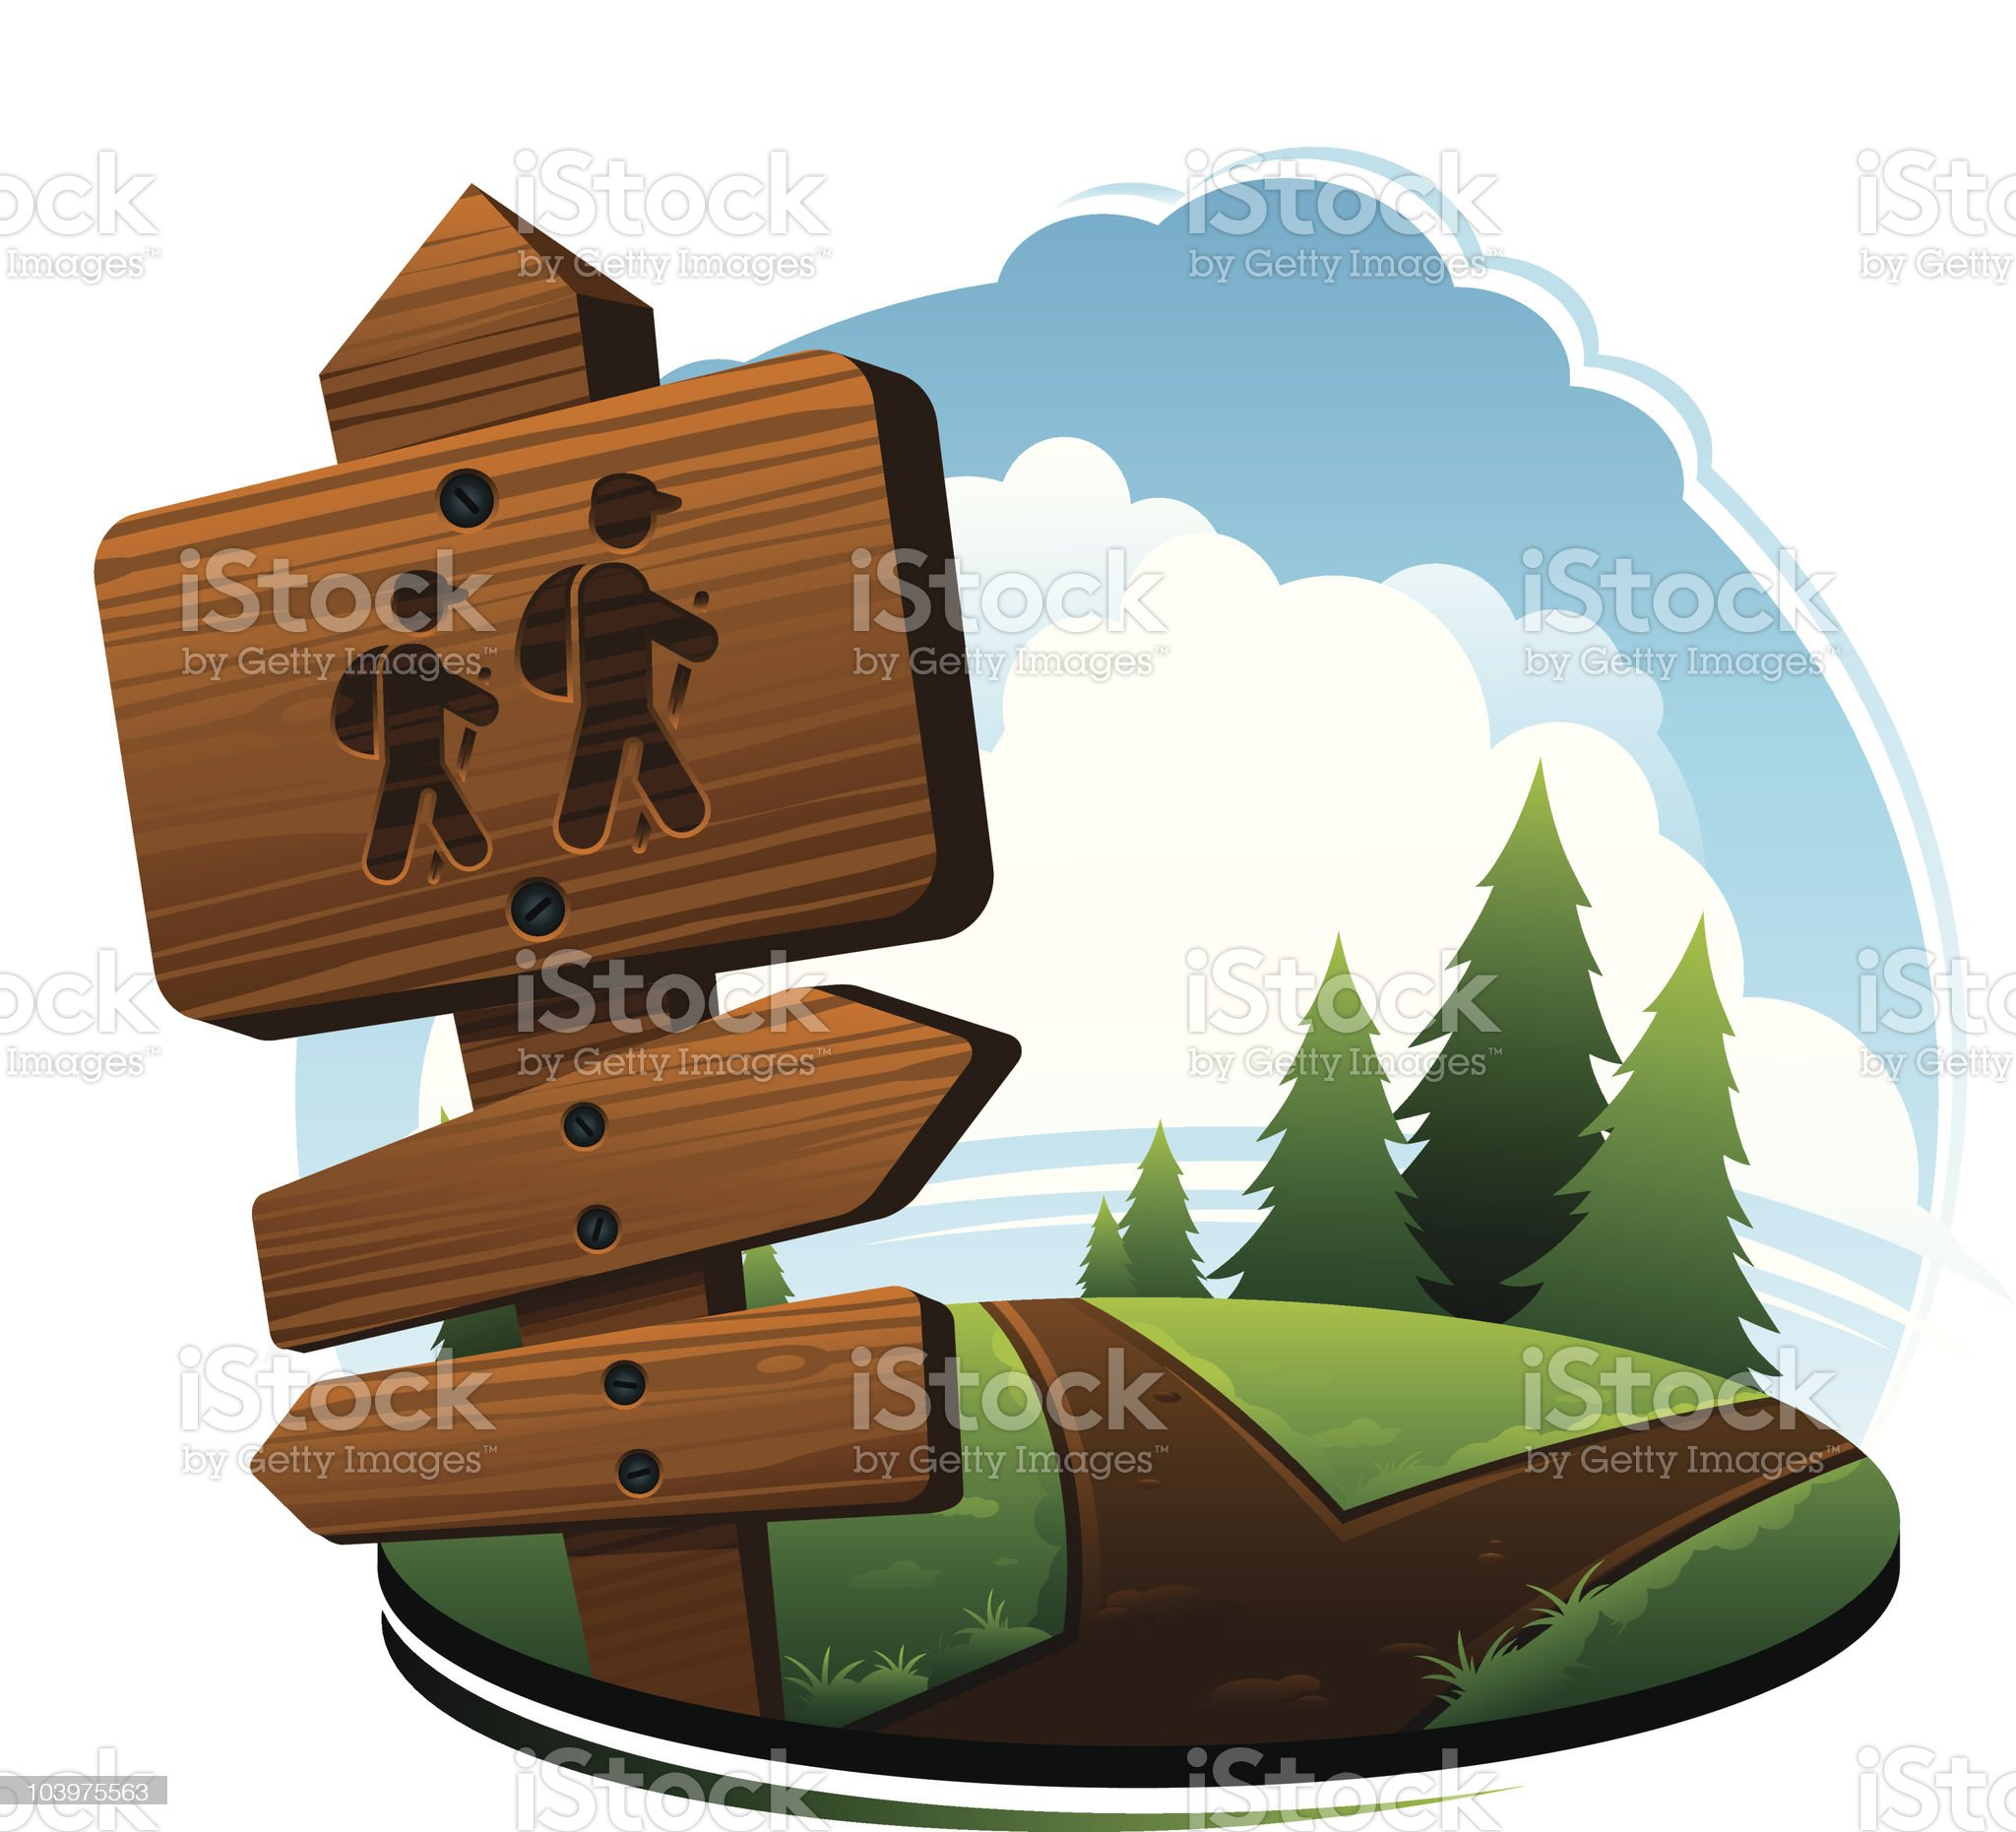 Hiking Trails In Nature royalty-free stock vector art